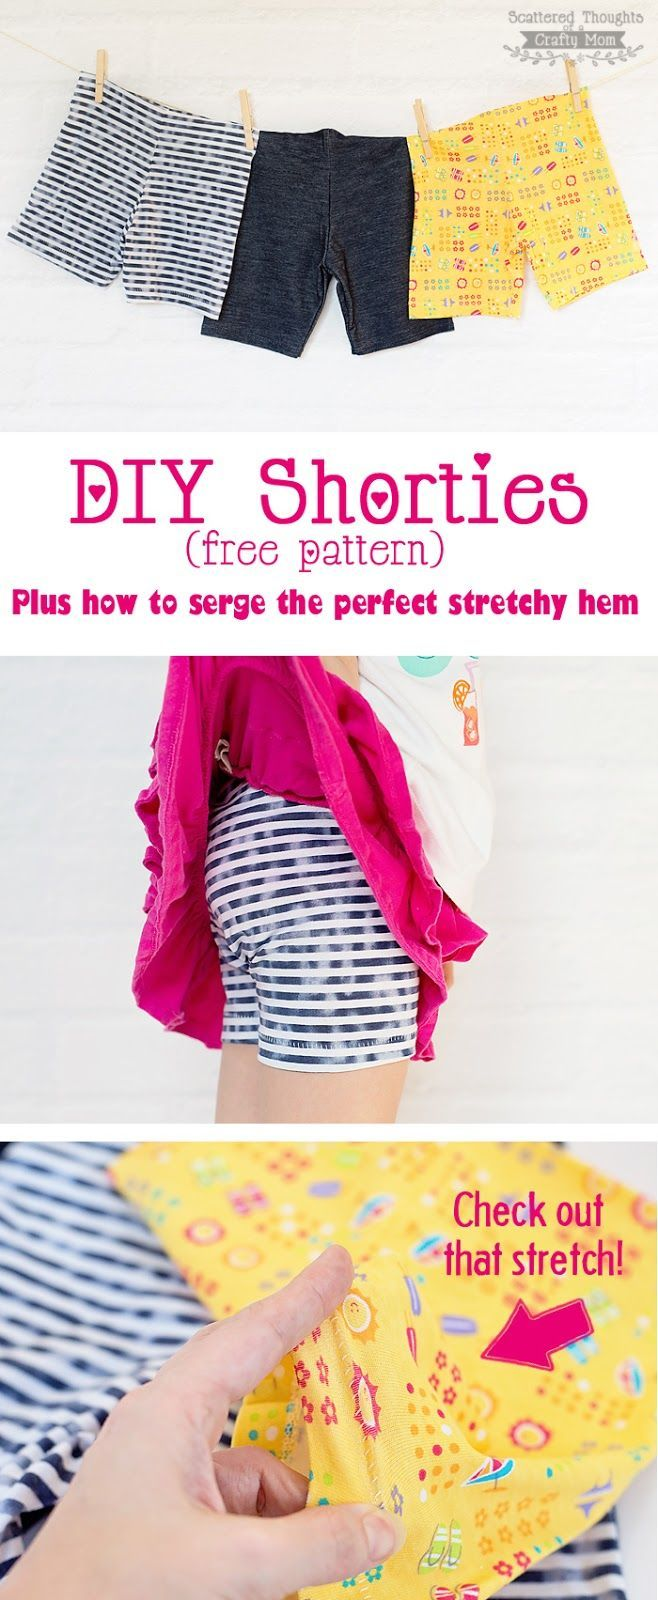 Free Shortie Pattern || Scattered Thoughts of A Crafty Mom